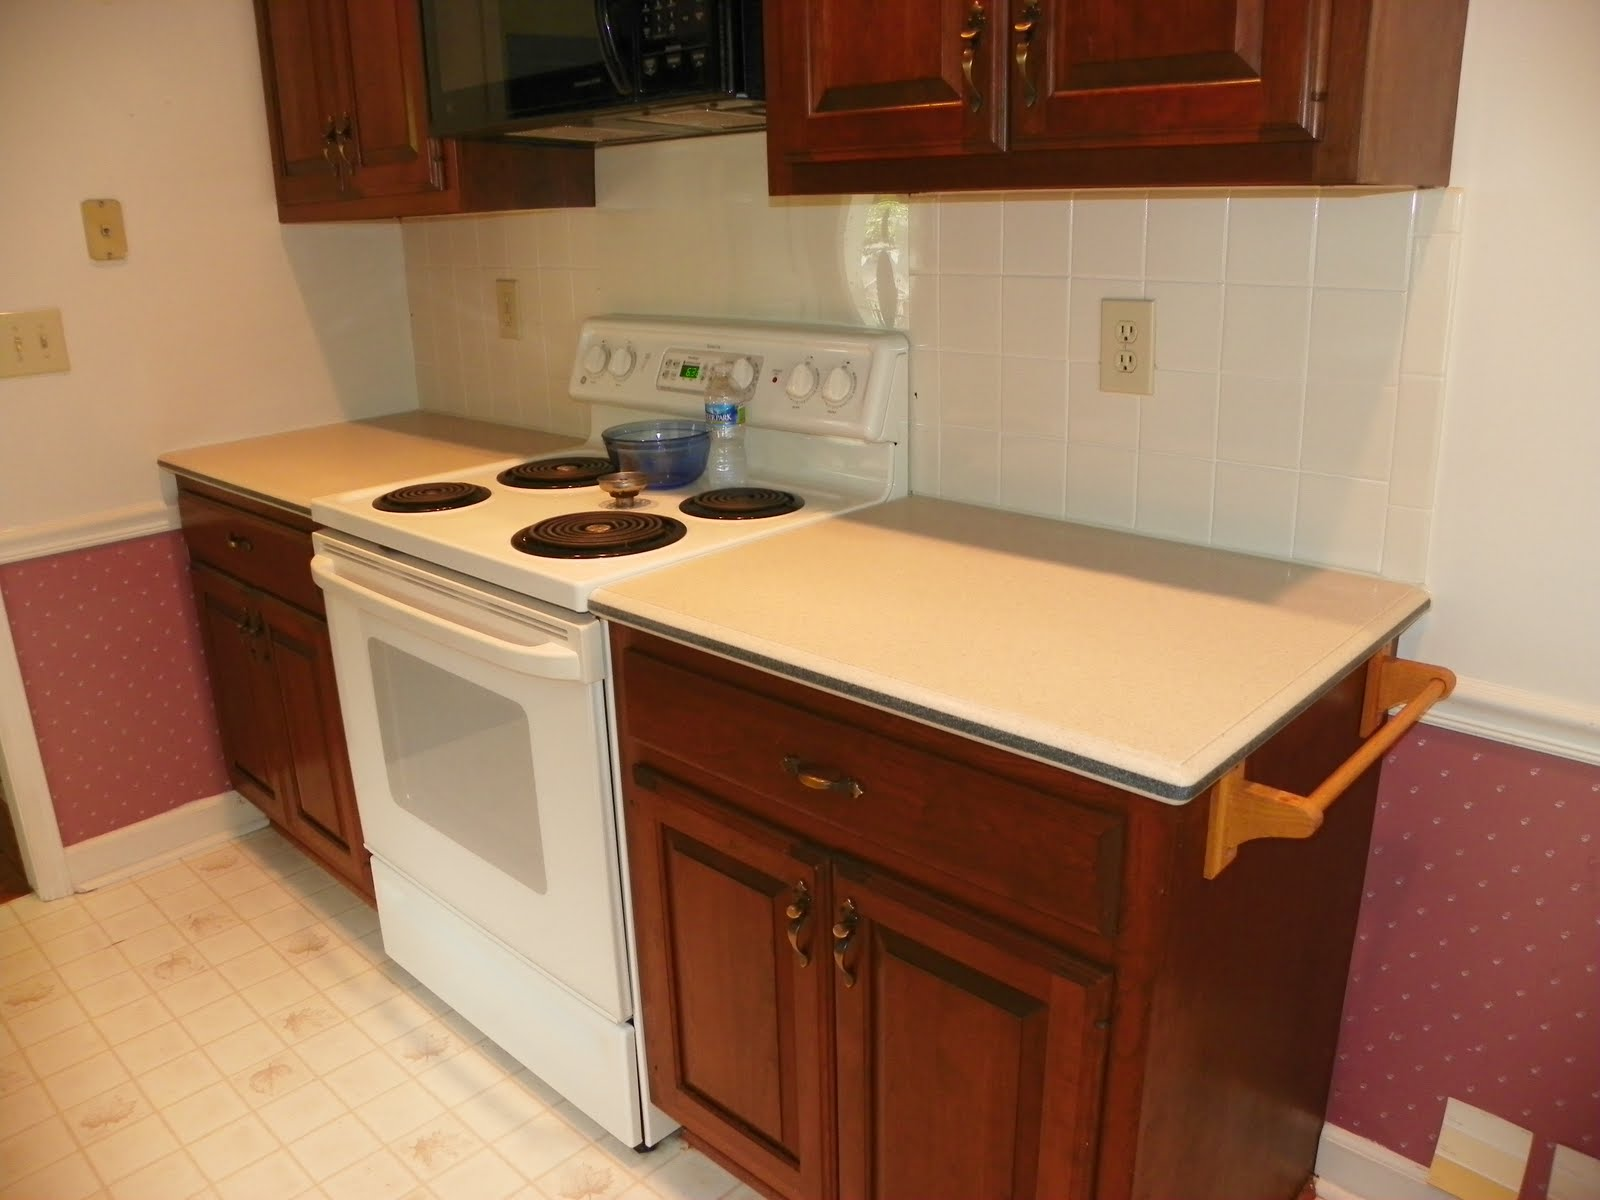 Corian countertops cost full image for how much do corian - How much does lowes charge to install a kitchen sink ...